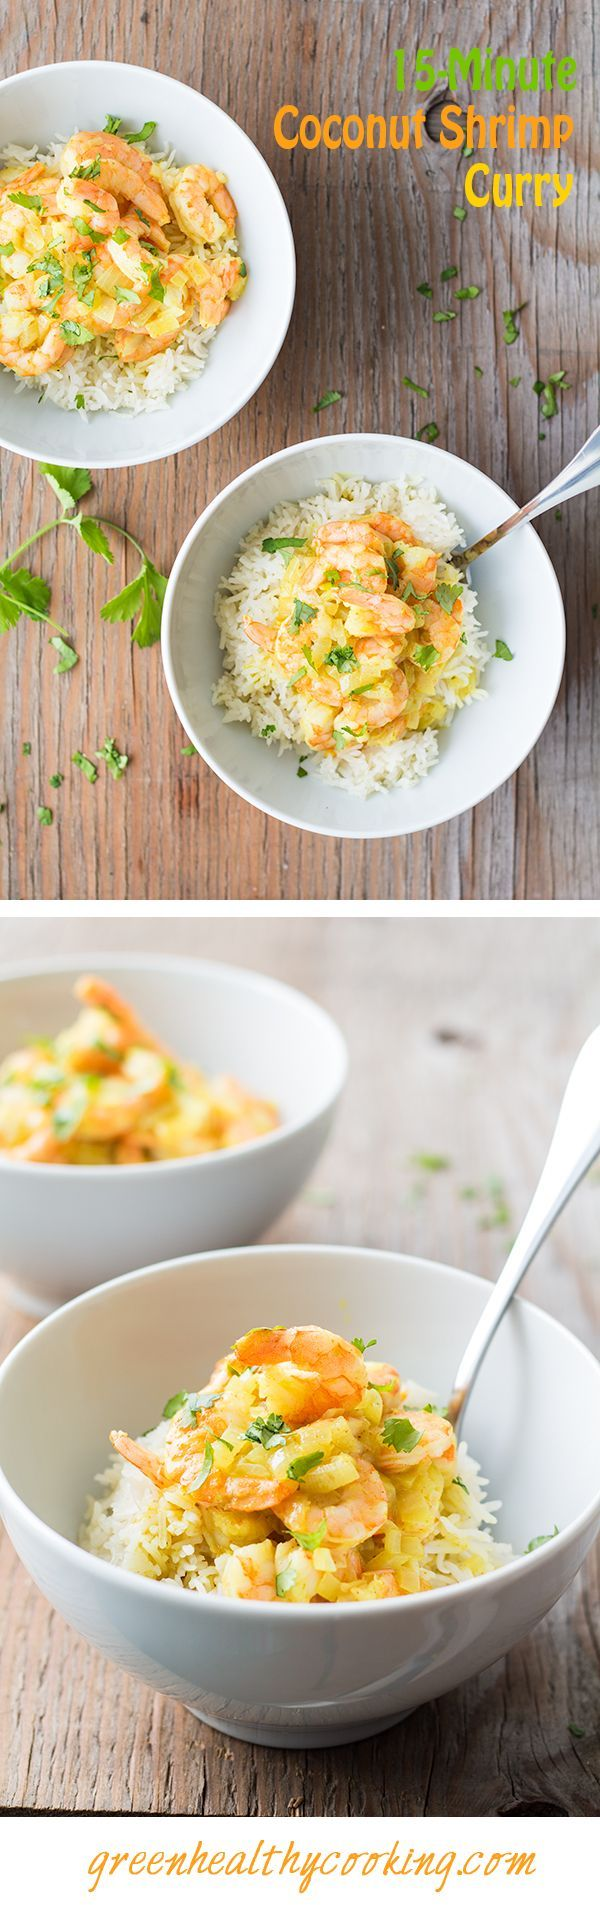 A 15-Minute Coconut Shrimp Curry recipe that competes with any fast food restaurant food in terms of fast preparation and absolutely wins in terms of taste.